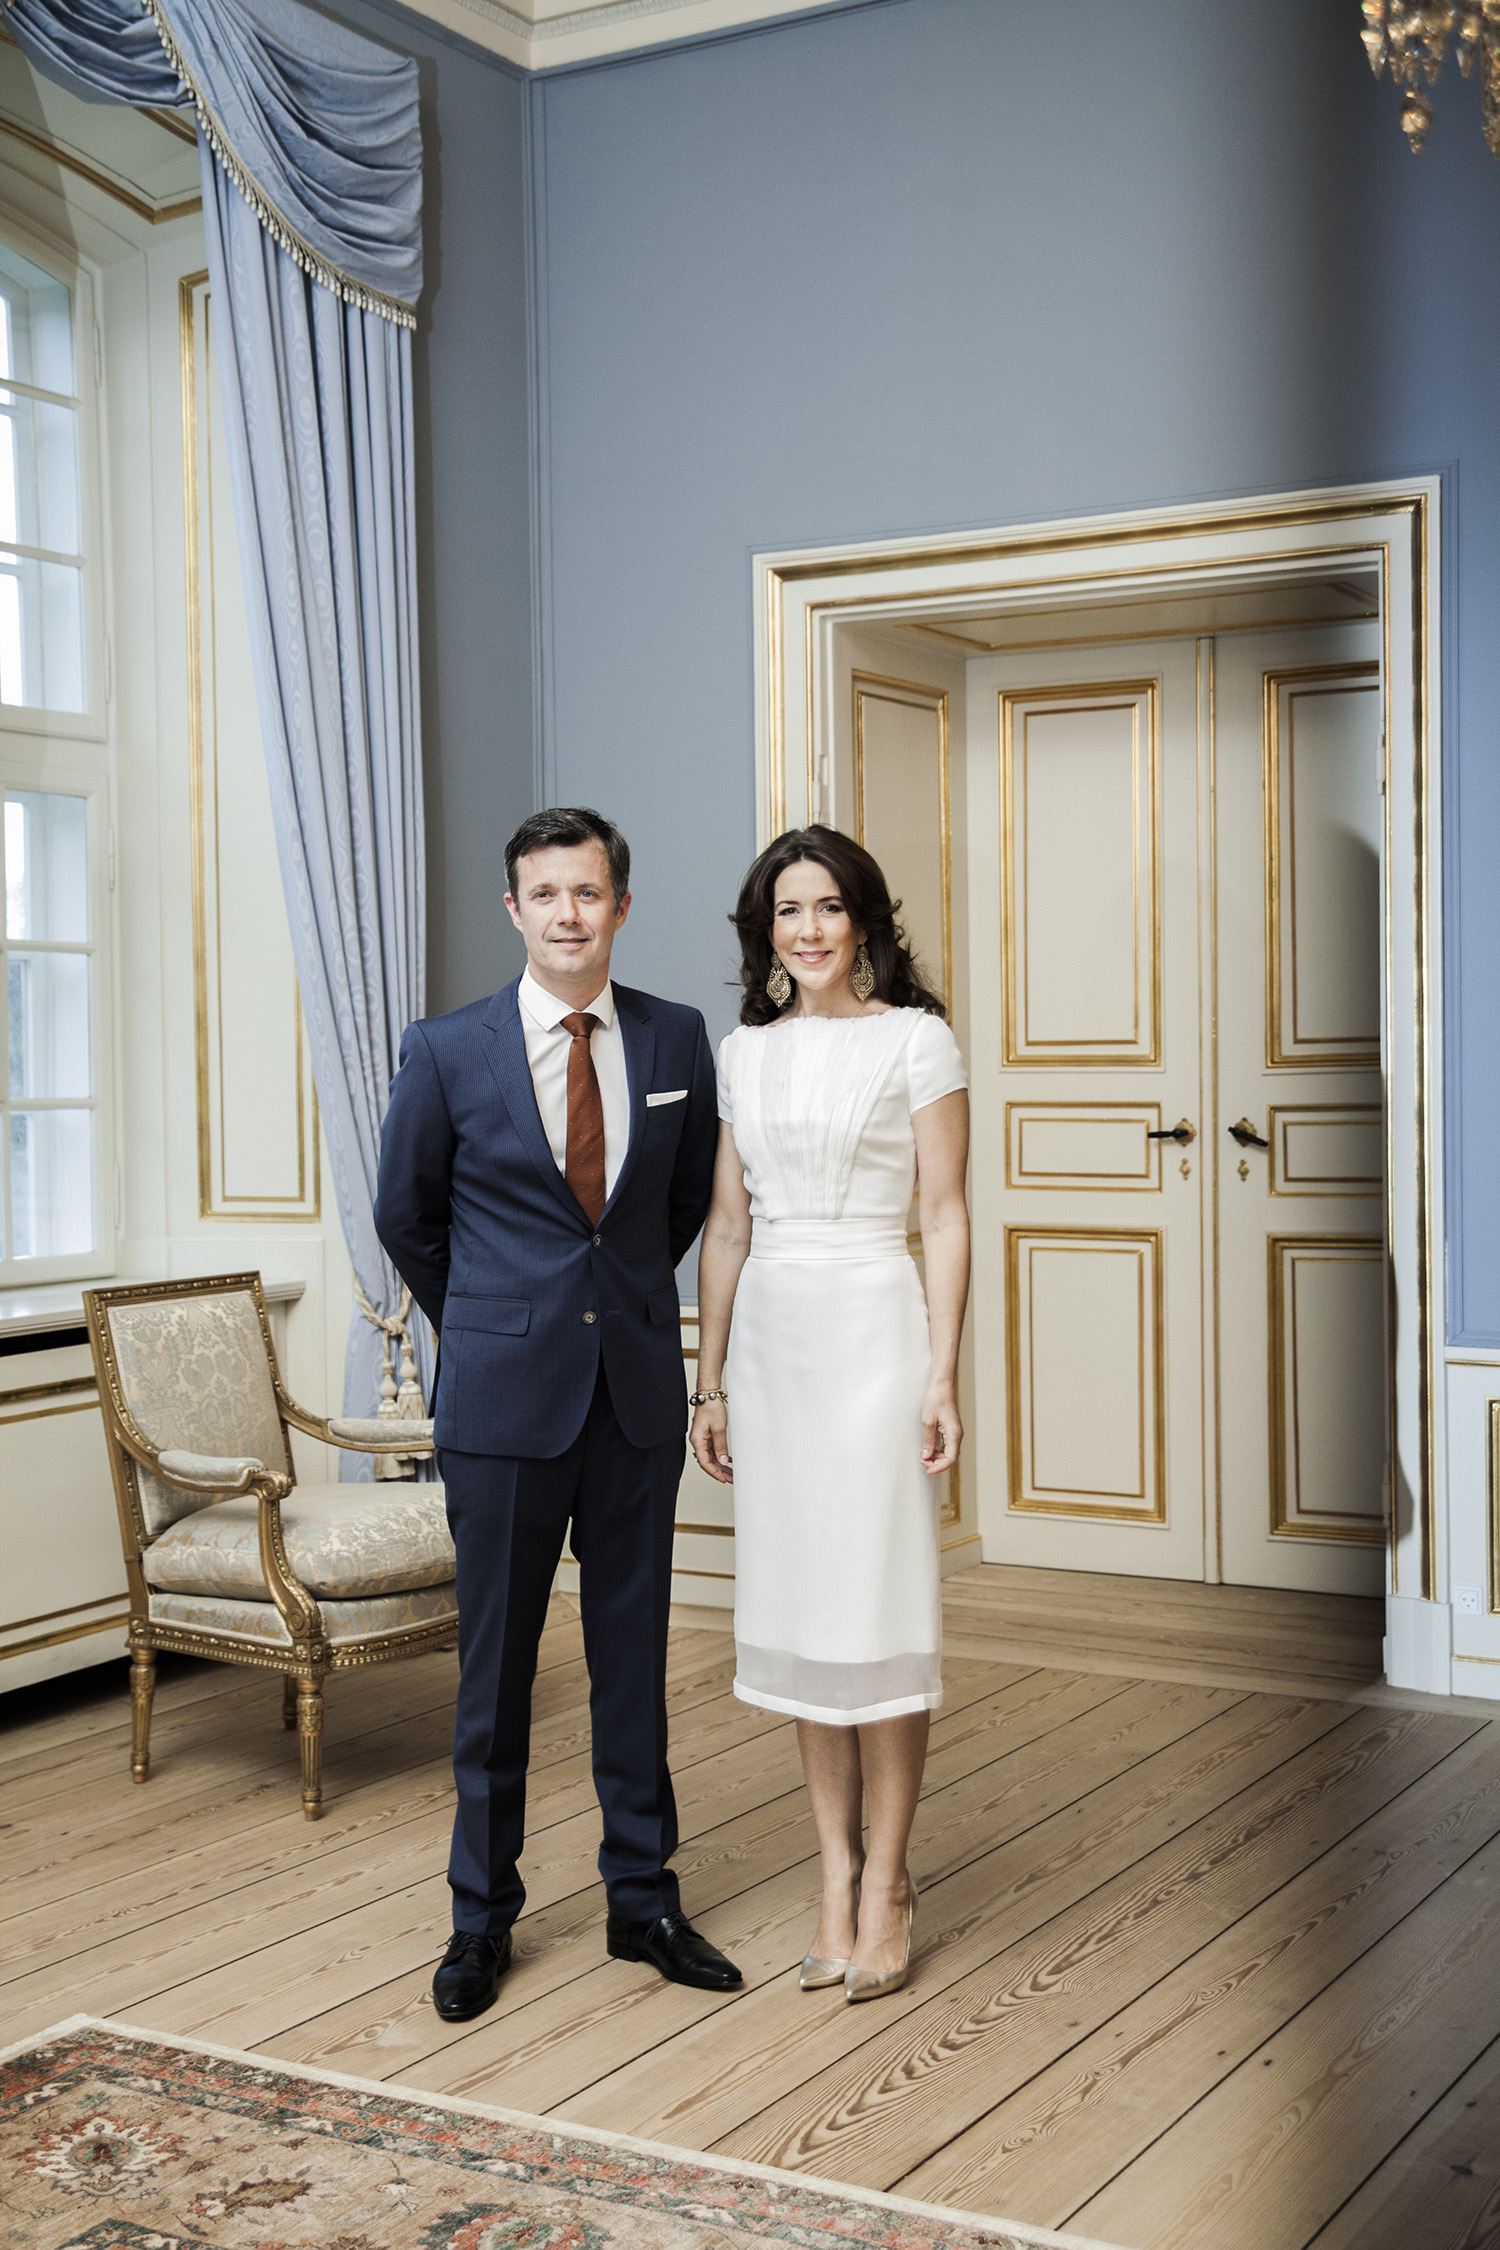 HRH Crown Prince Frederik and Crown Princess Mary